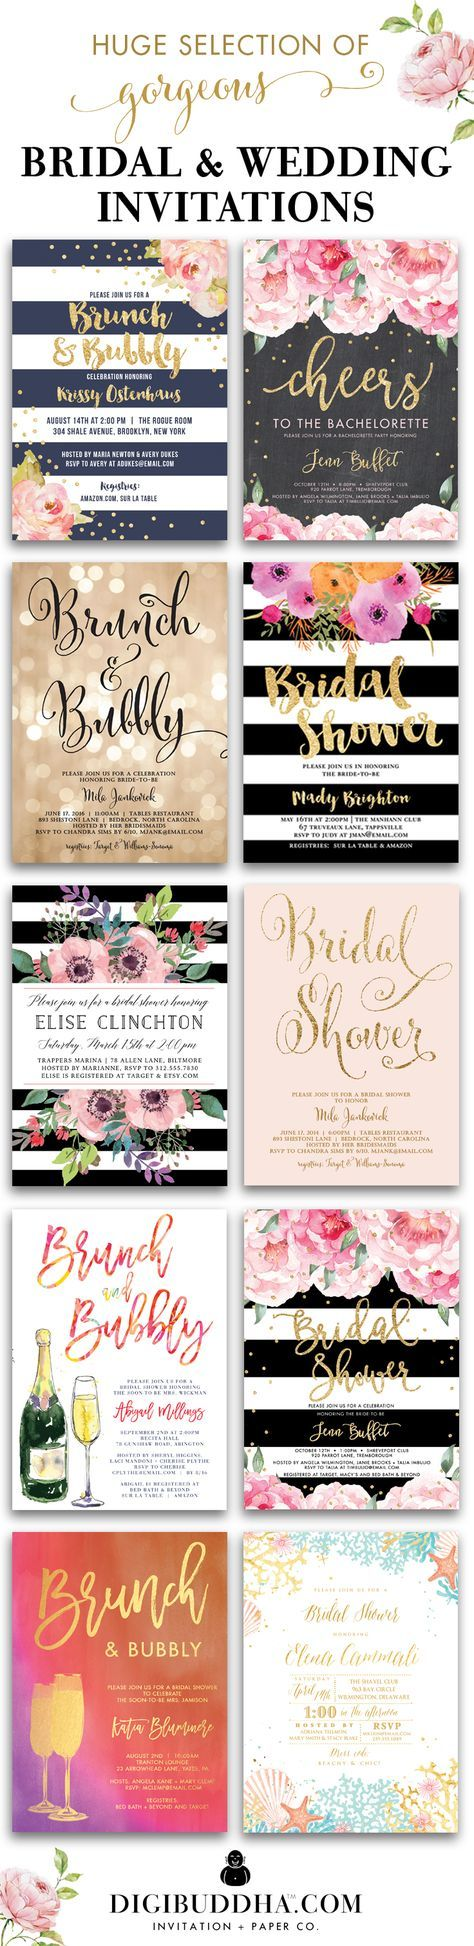 recipe themed bridal shower invitation wording%0A Huge selection of original trendsetting bridal shower invitations and wedding  invitations in styles ranging